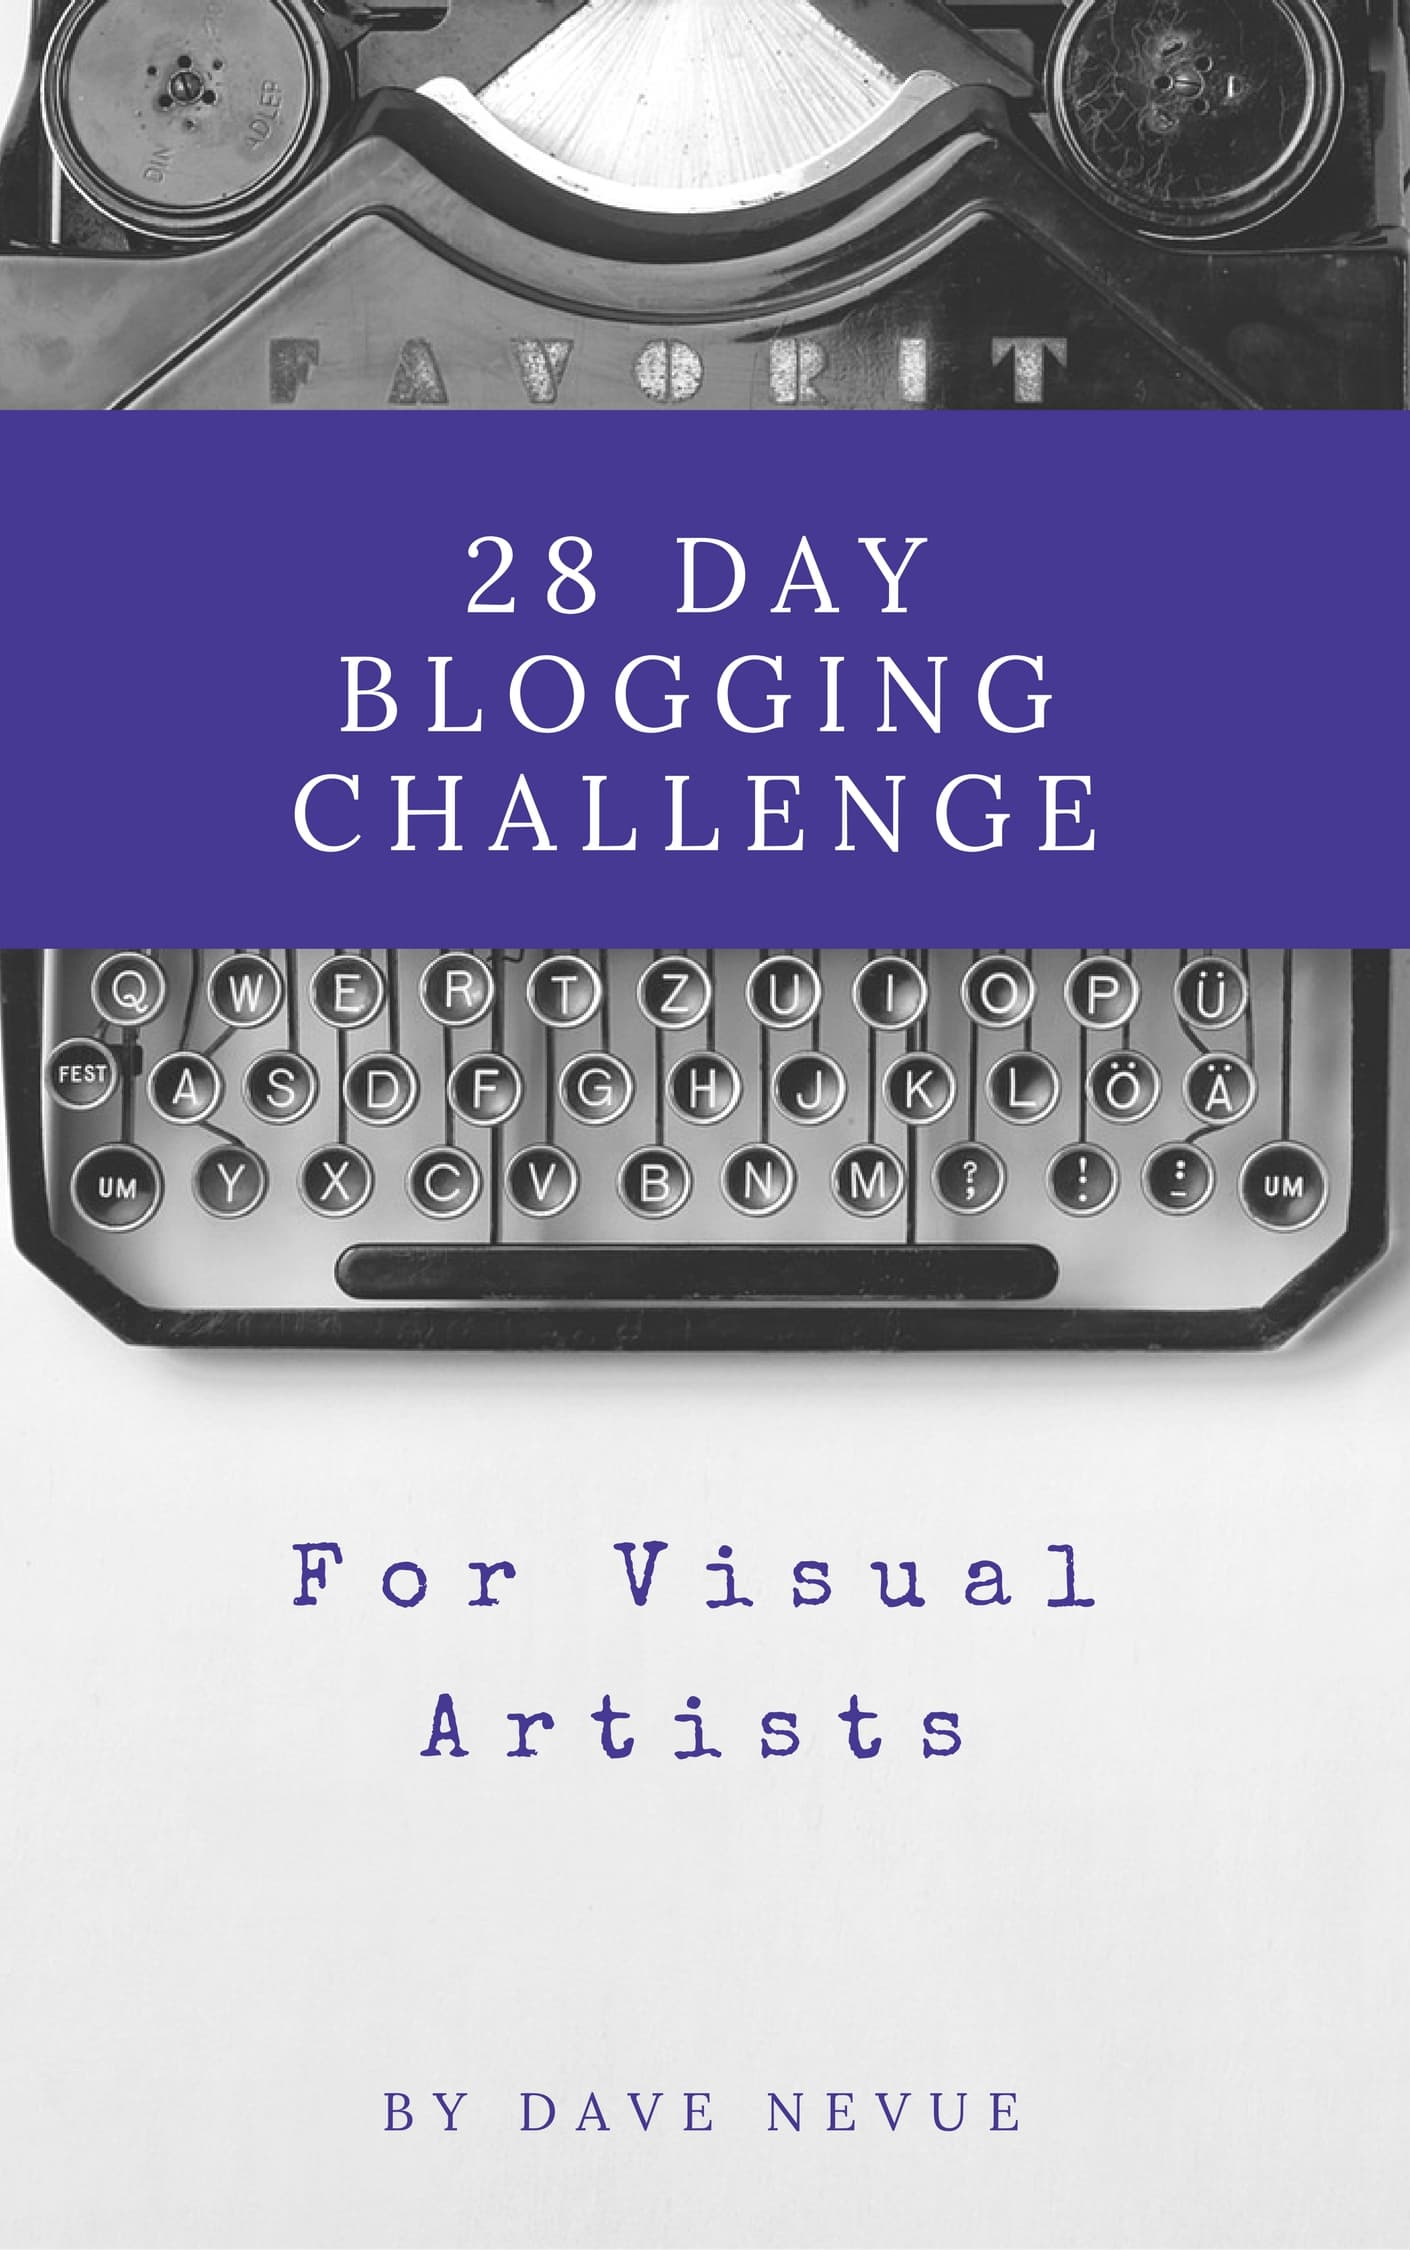 28 Day Blogging Chellenge